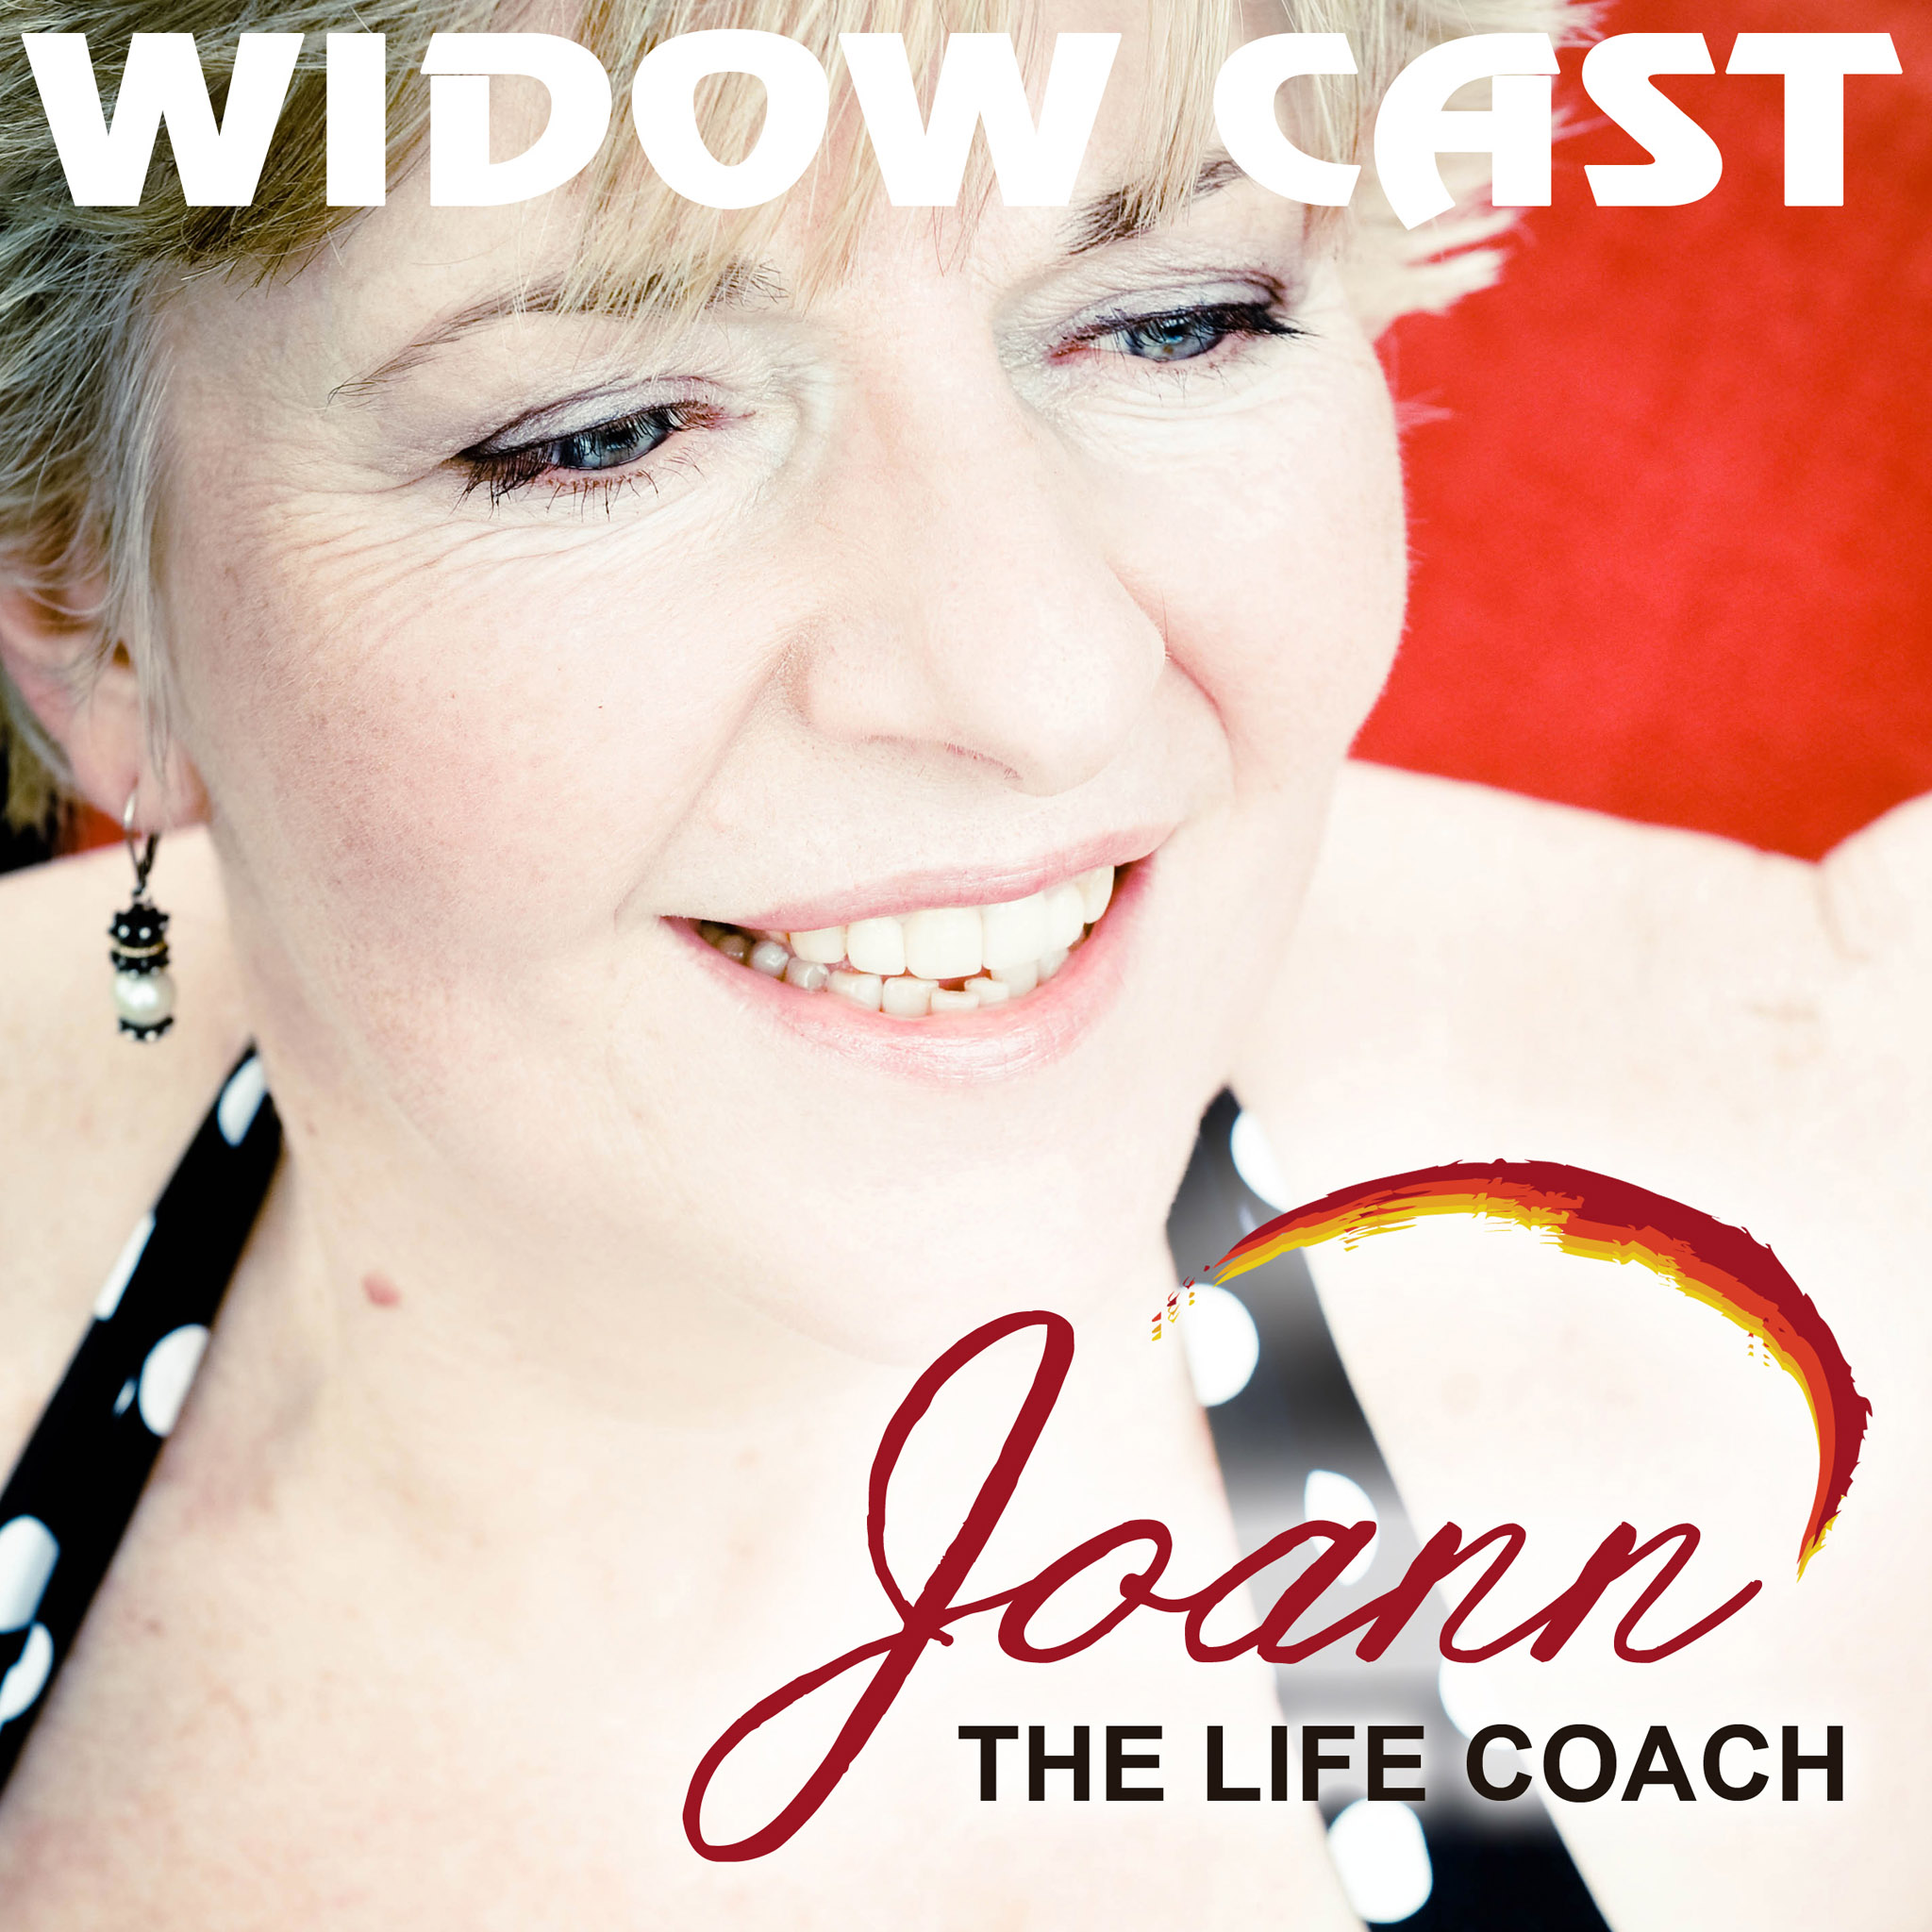 Widow Cast: A personal story and insights on being widowed